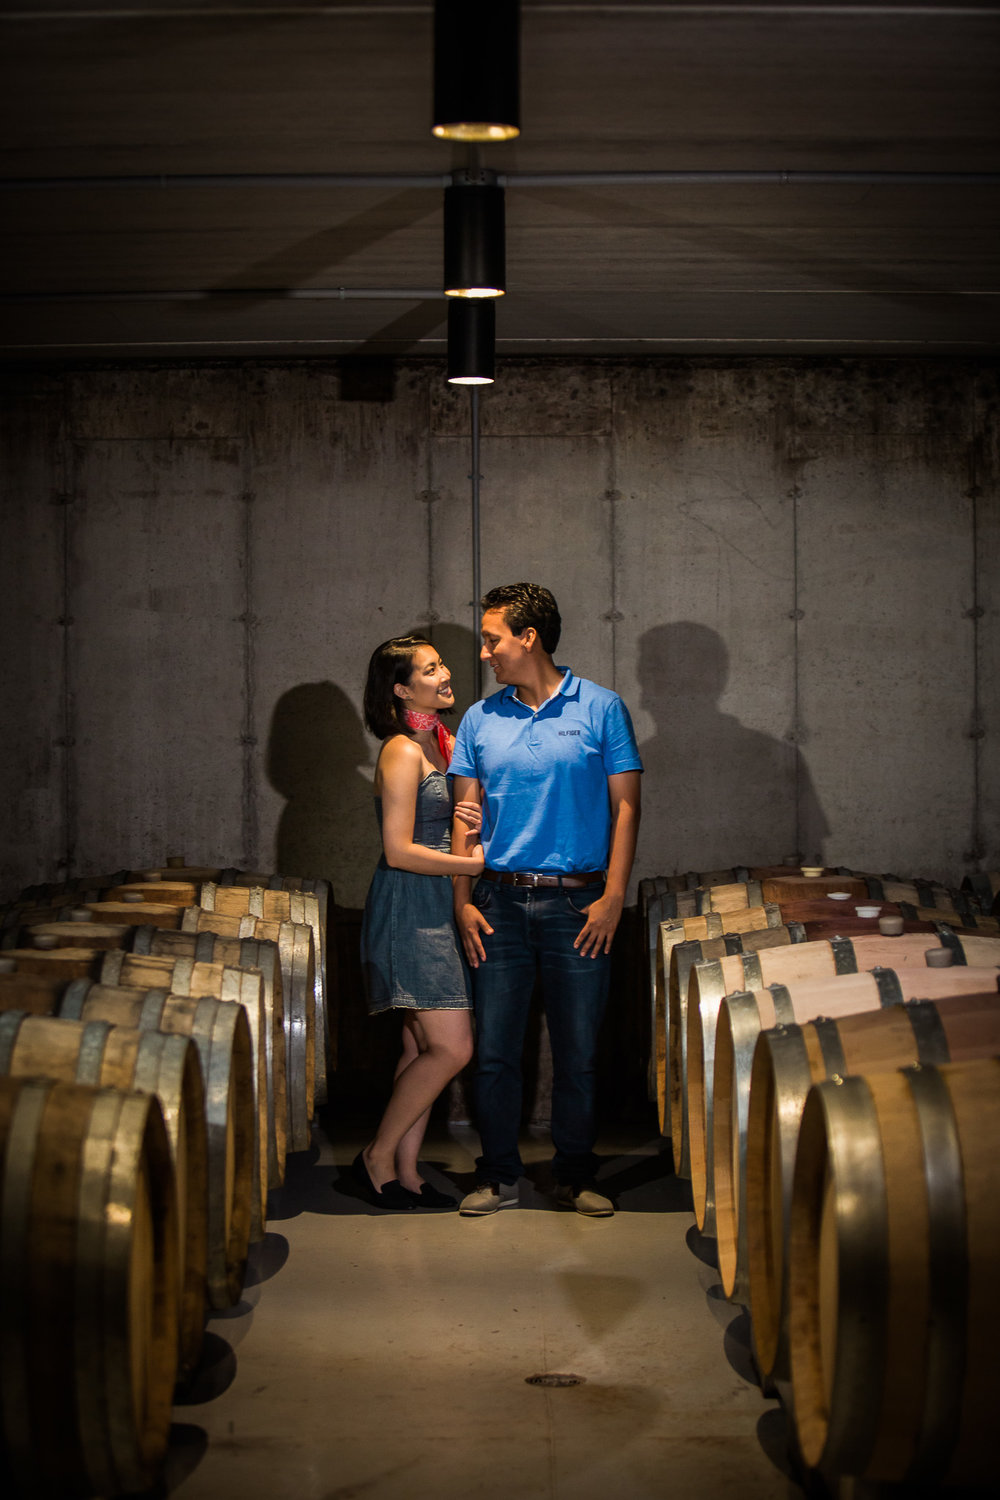 wineryengagement-3.jpg